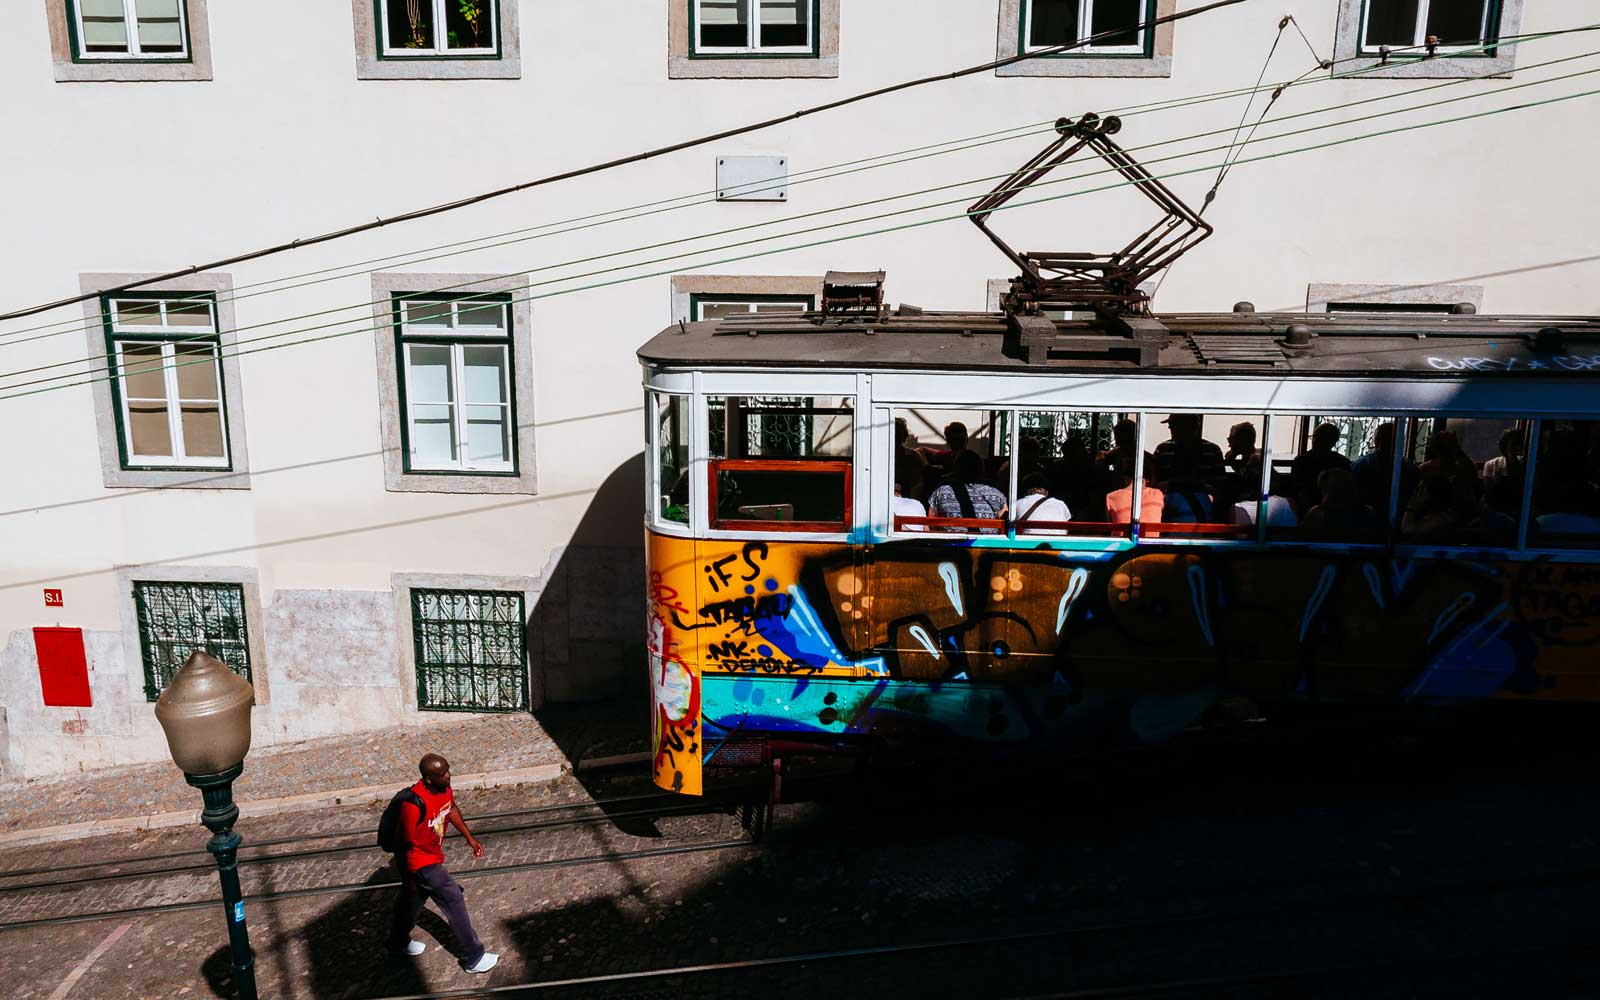 Man walking by a graffiti painted tram on cobbled street in Lisbon, Portugal